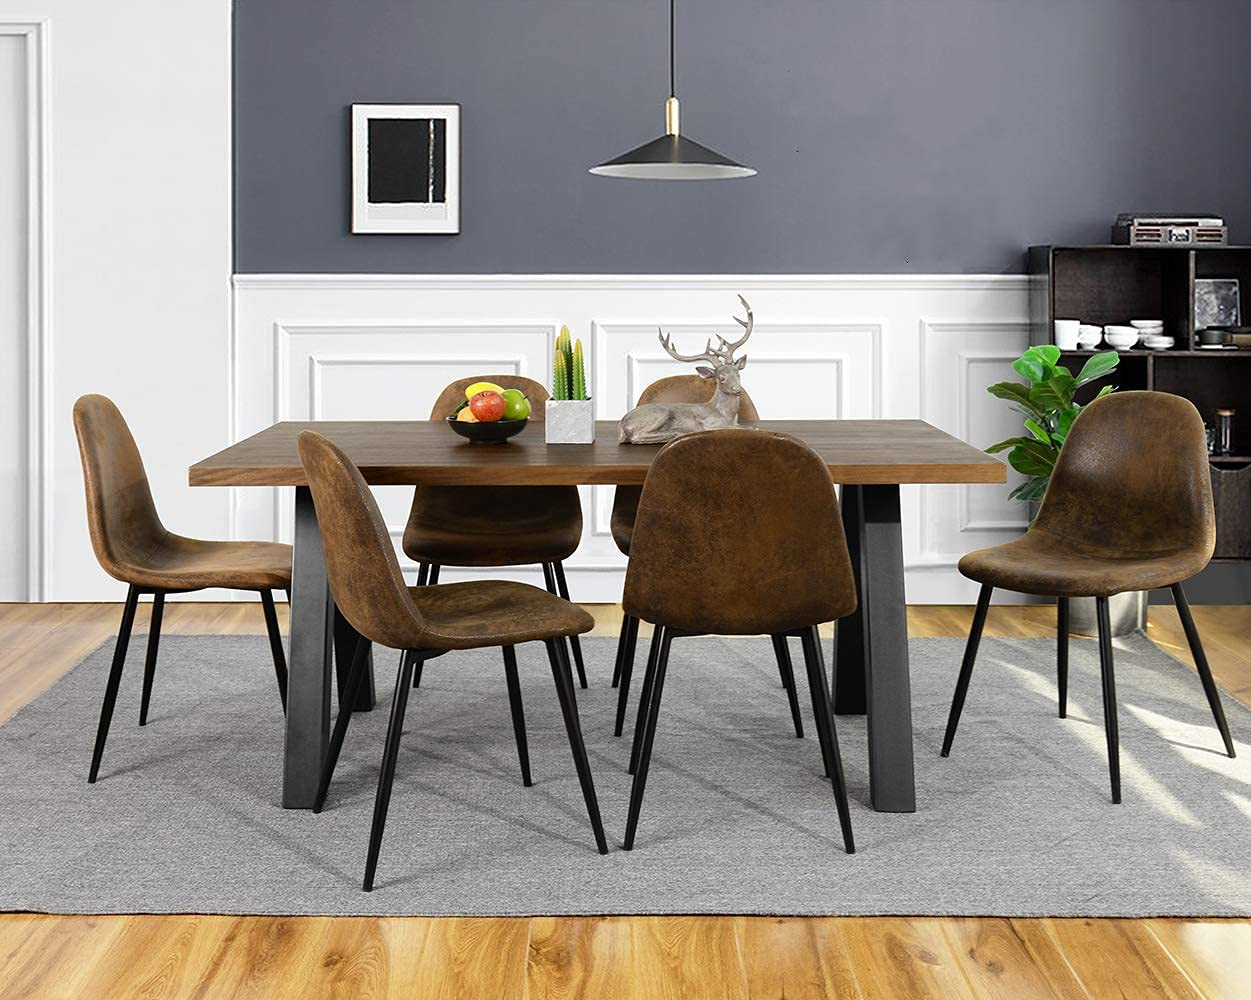 CozyCasa Dining Chairs Set of 9 Modern Style Mid Century Chair for Kitchen  Dining Room Accent Chair in Dark Brown, Black Leg